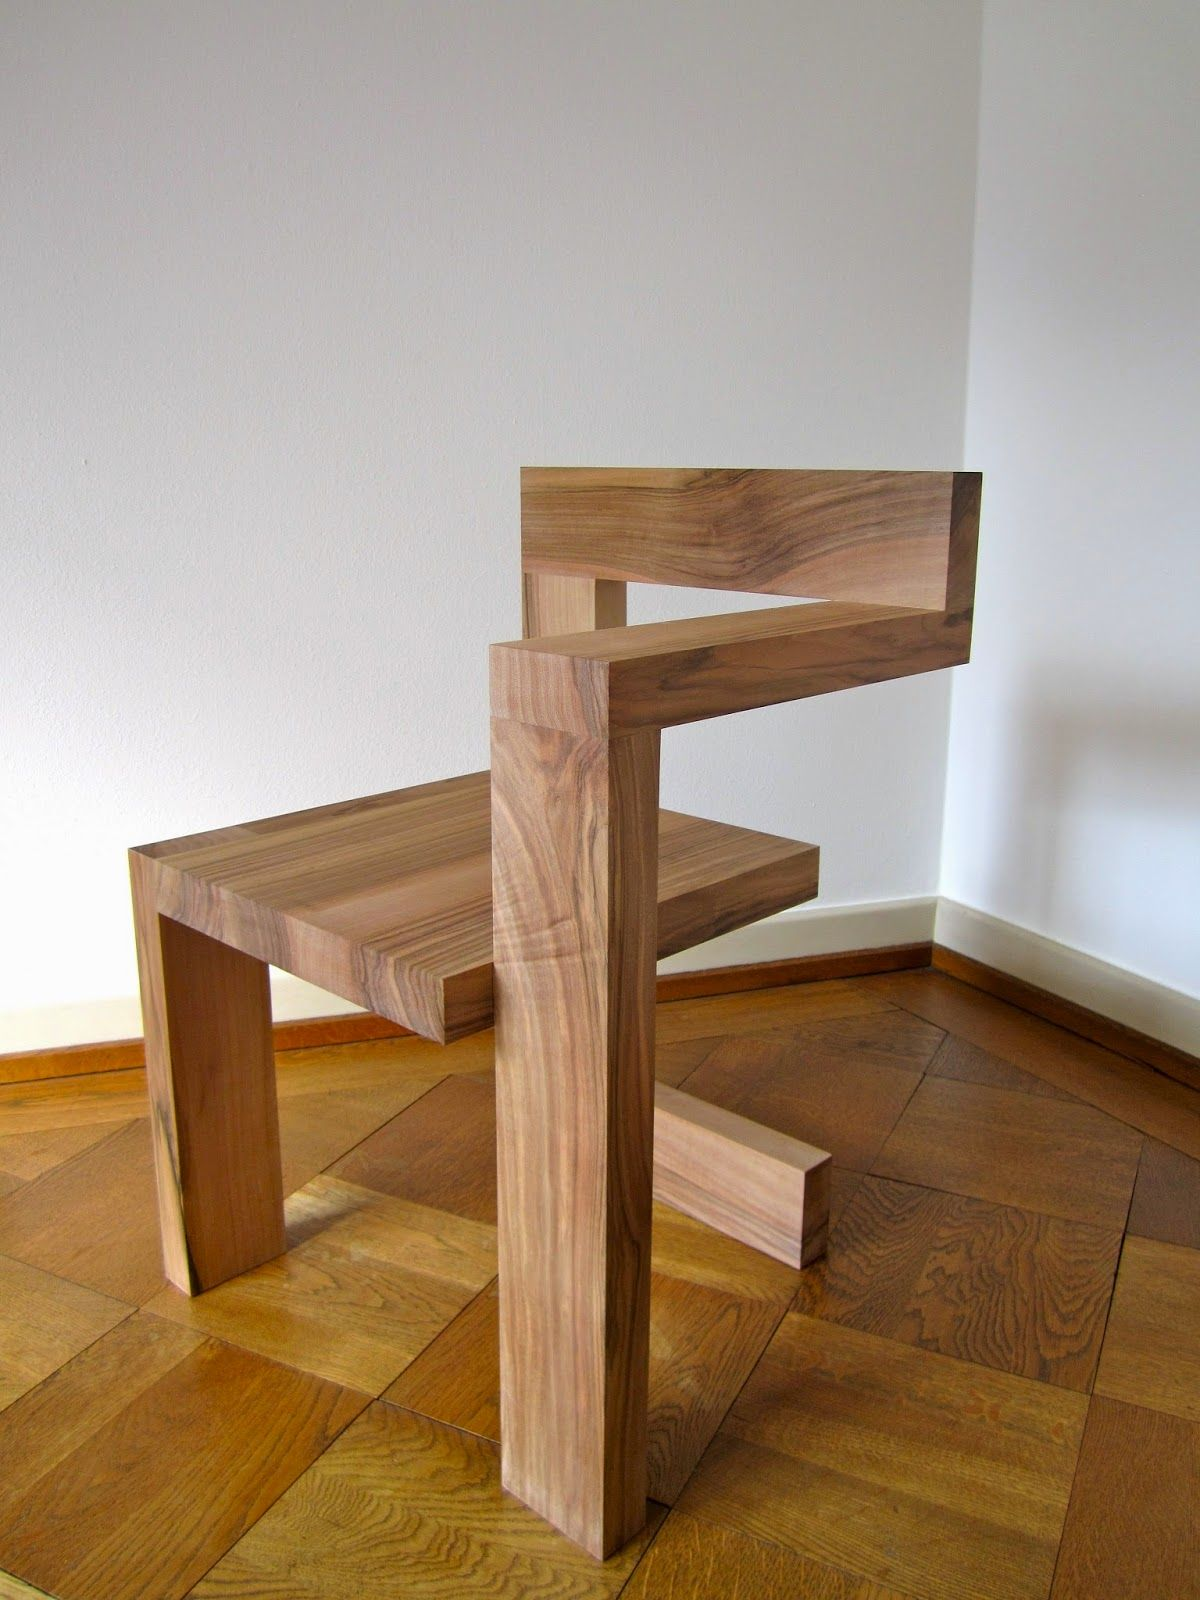 modern wood chair plans walmart fold up chairs rietveld furniture design building construction